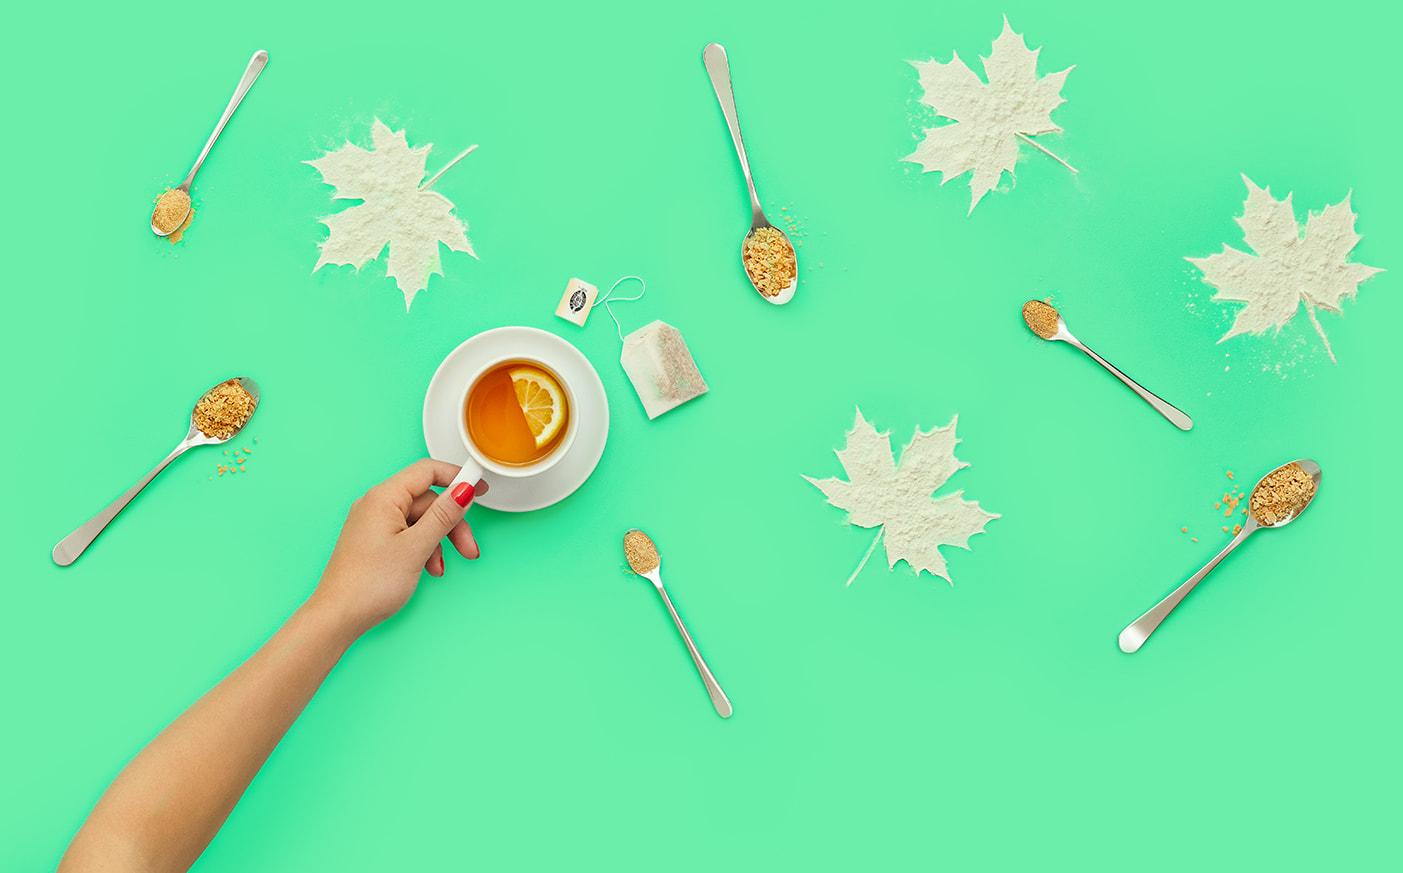 Cup of maple tea with lemon wedge beside spoons with maple flakes.